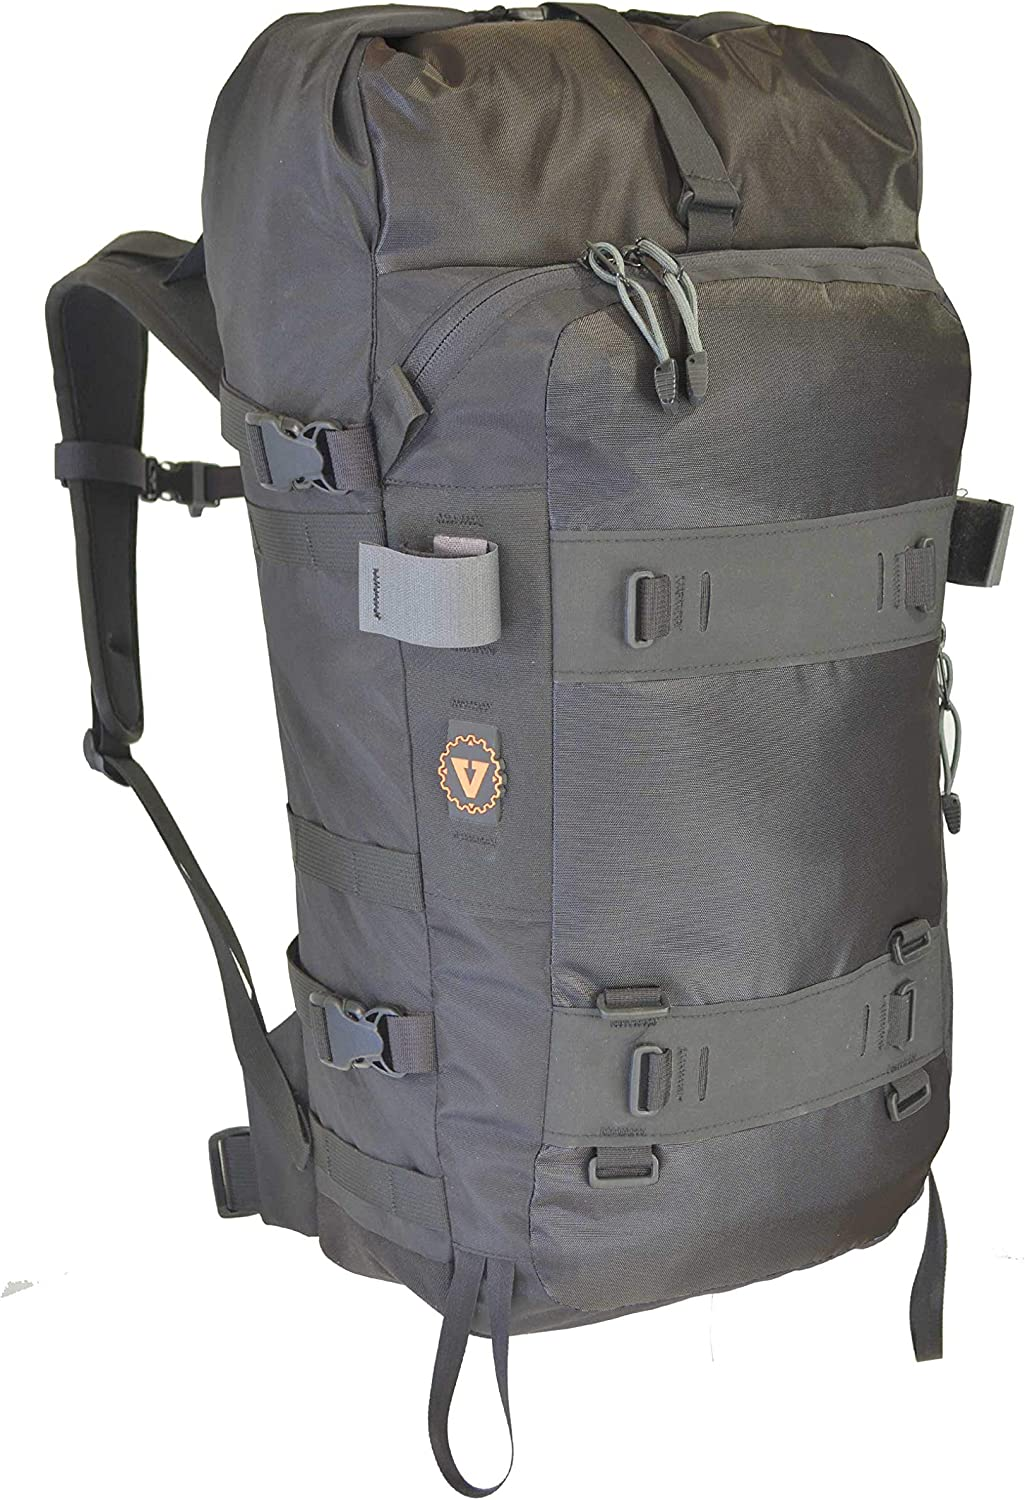 Vertical Gear Sale SALE% OFF Hightrail Ranking TOP4 Backpack 45